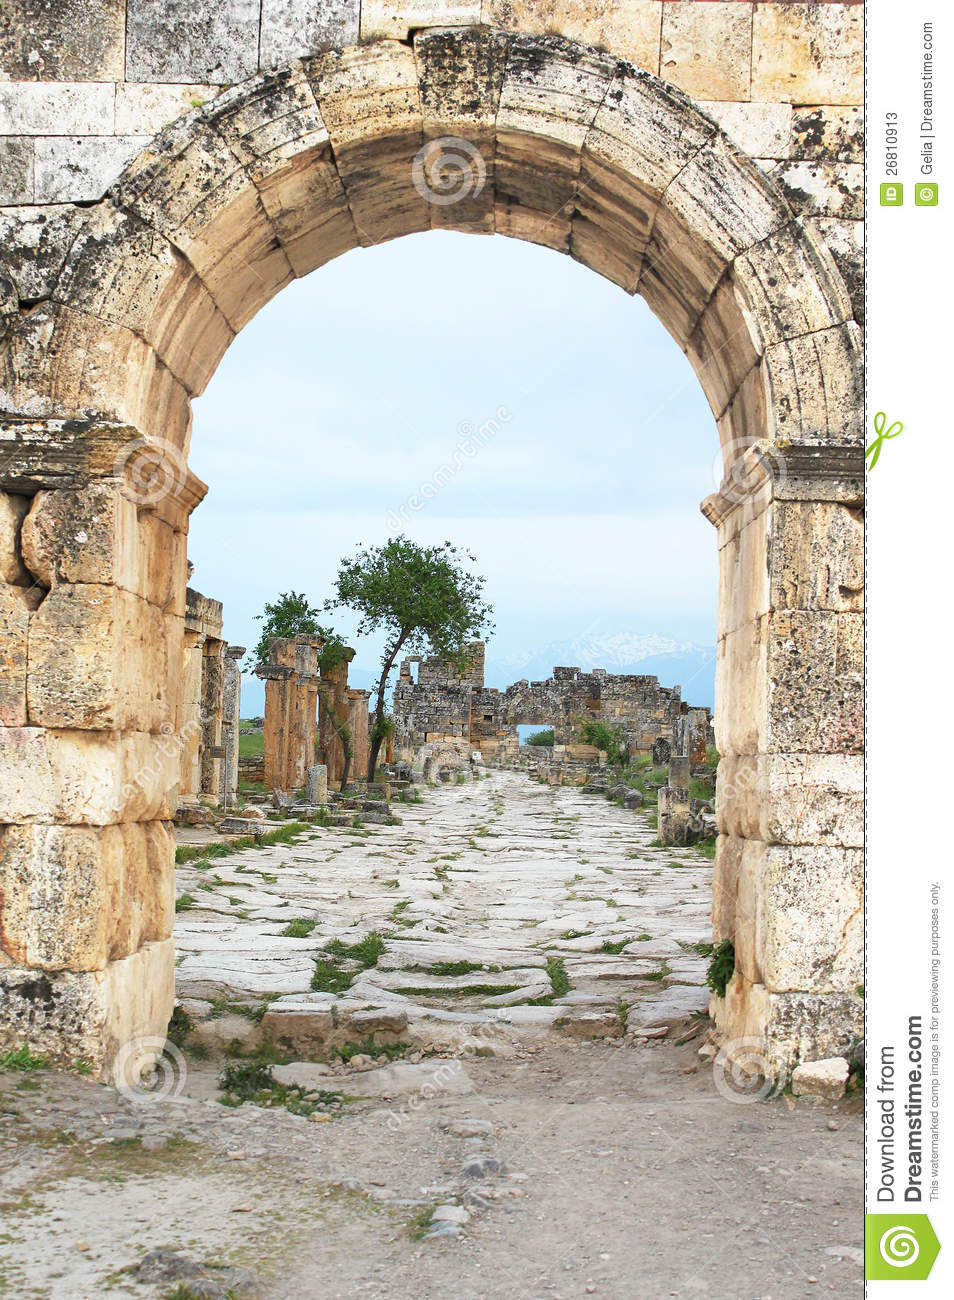 Ruins Of The Ancient City Of Hierapolis Stock Photos - Image: 26810913